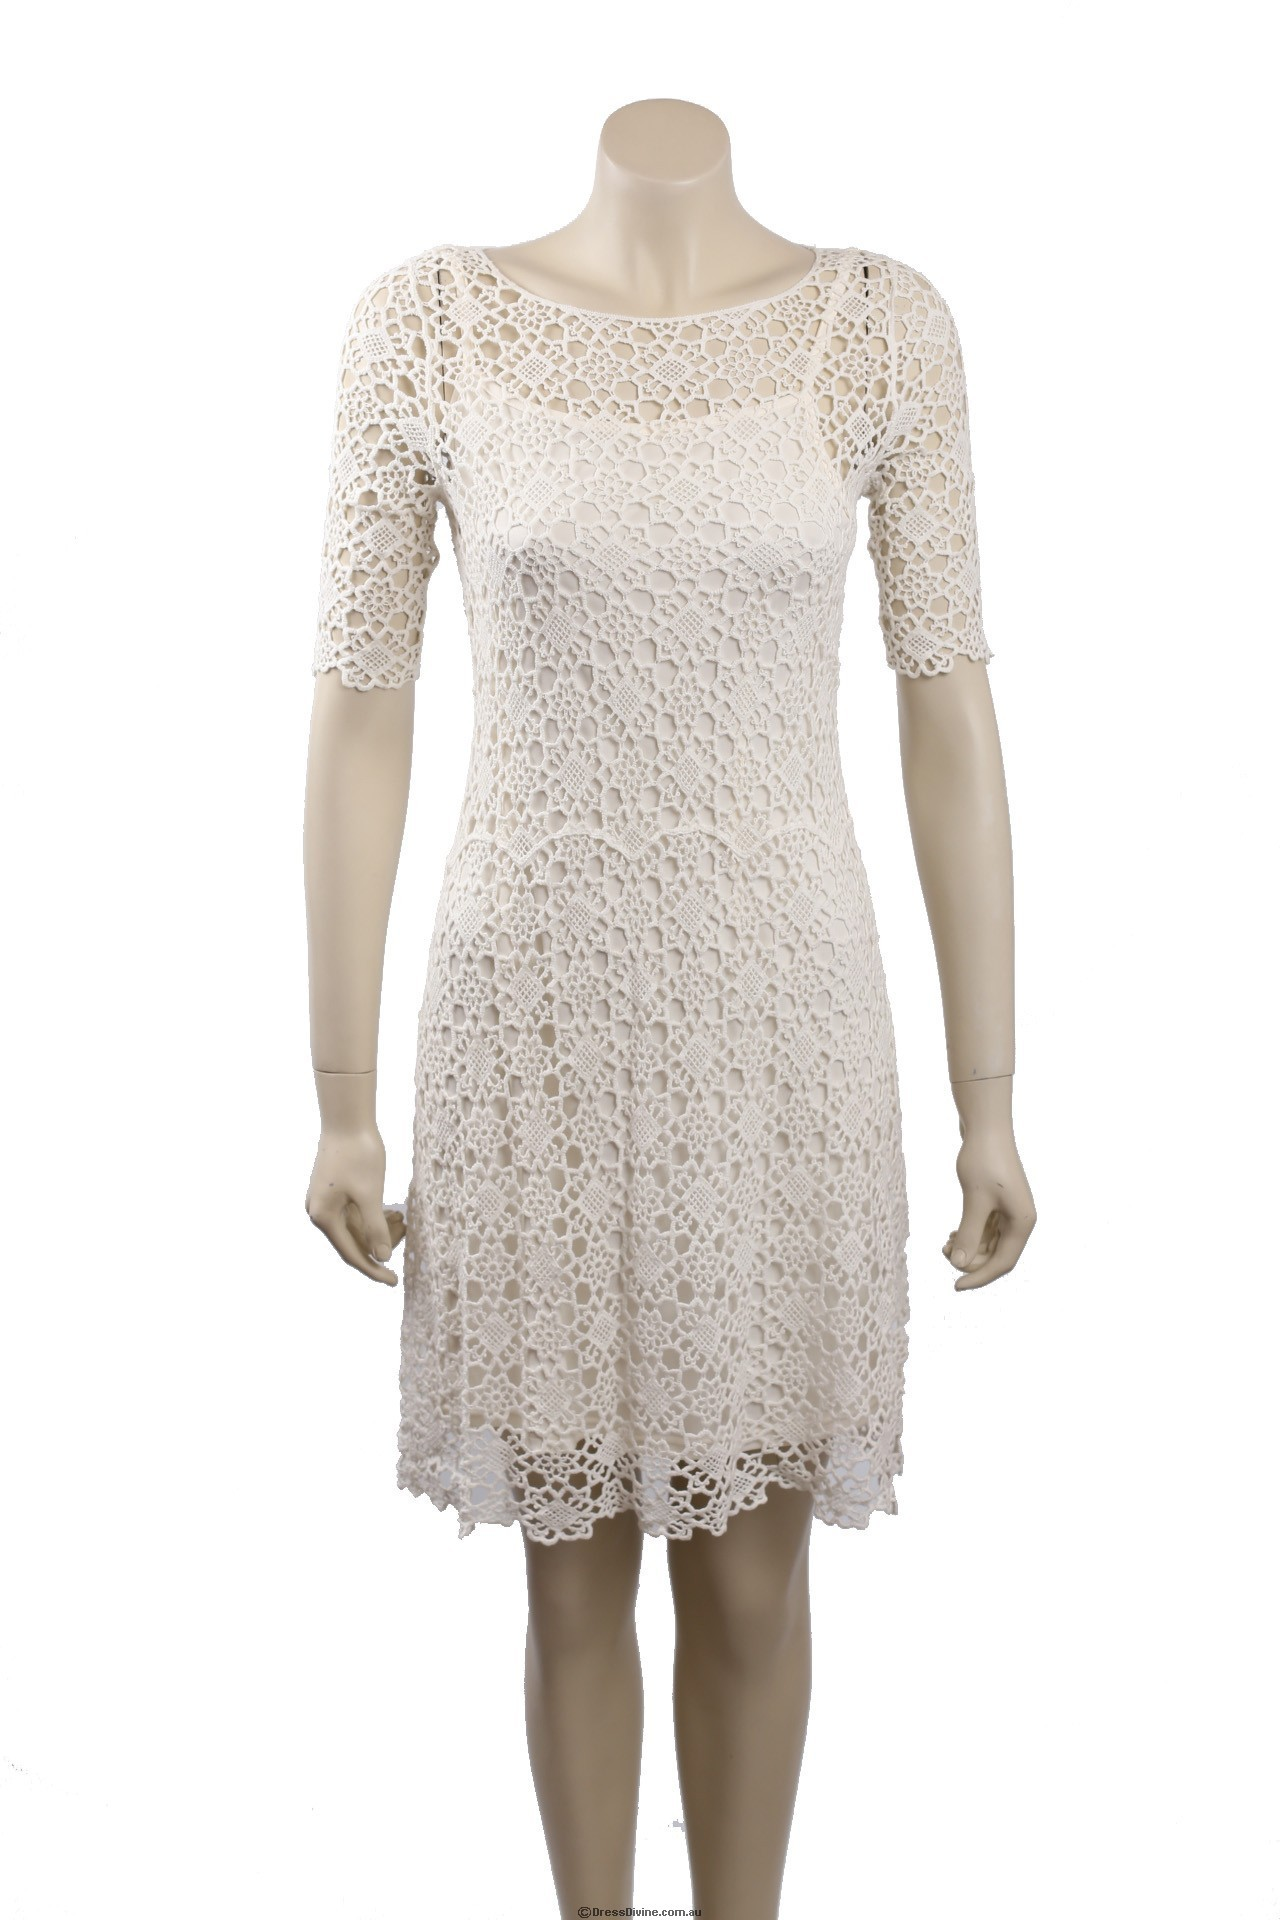 6dd60b73d36 Ralph Lauren White Crochet Cotton Cocktail Dress